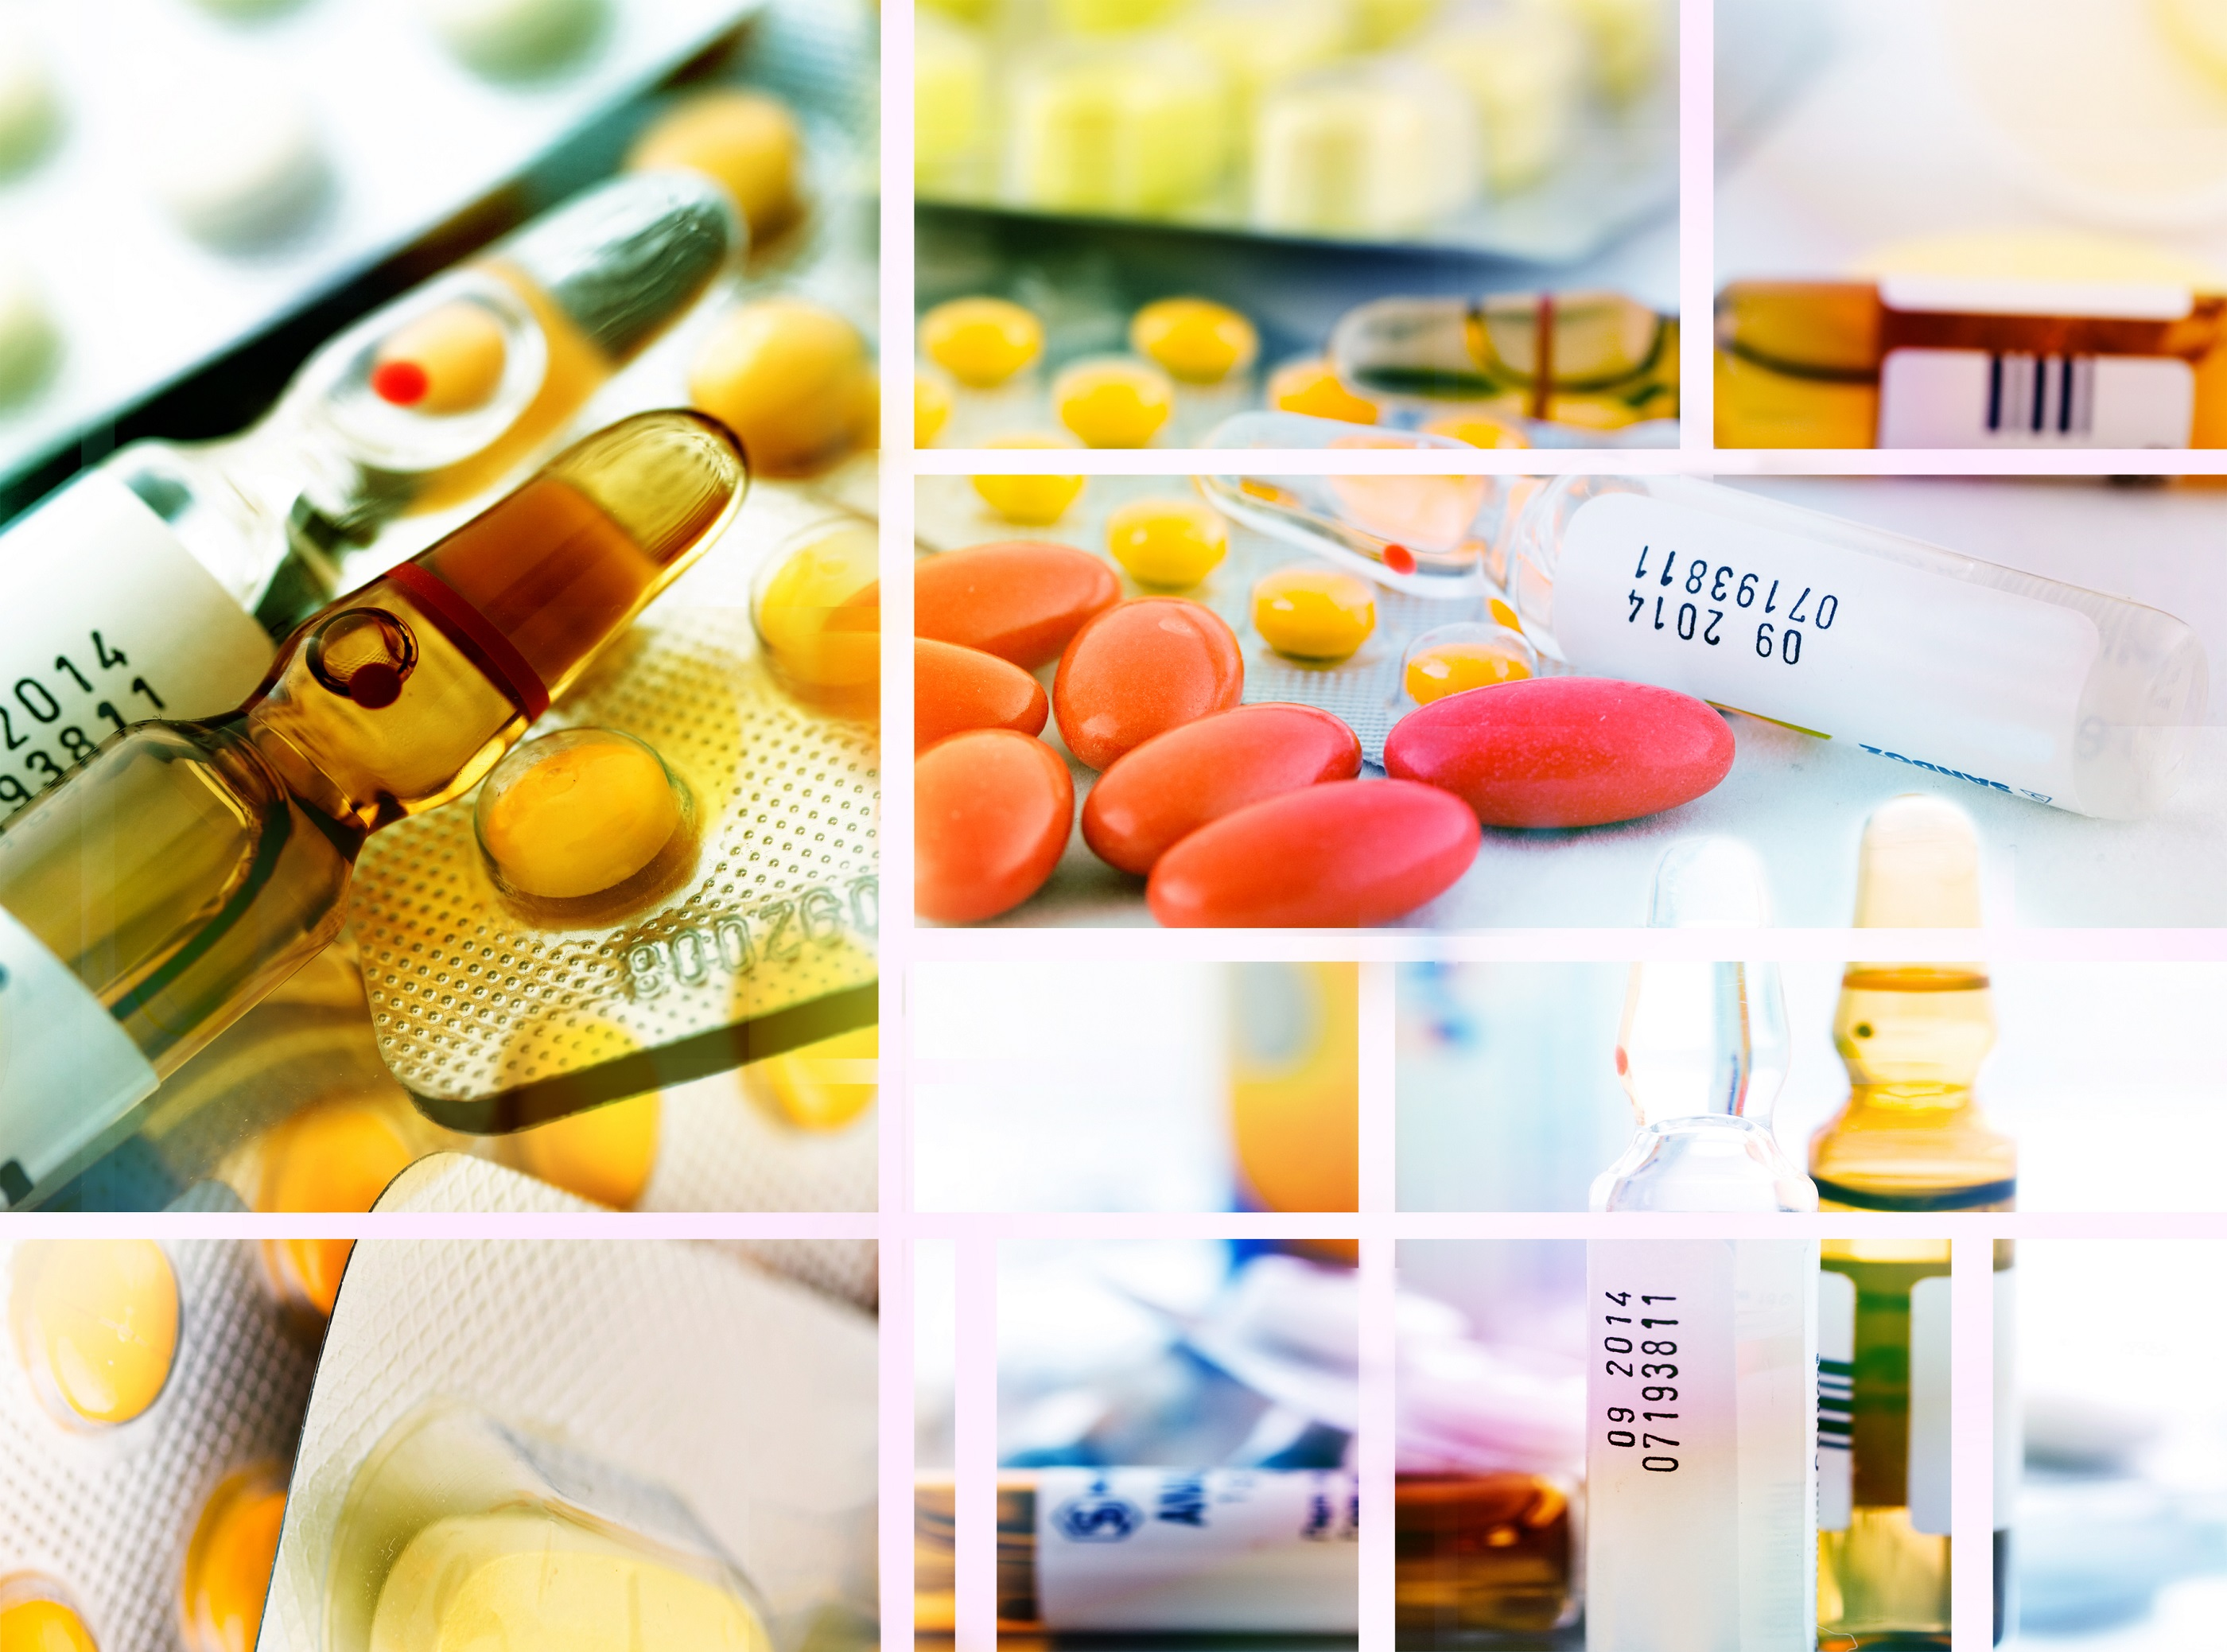 Pharmaceuticals & Biotechnology